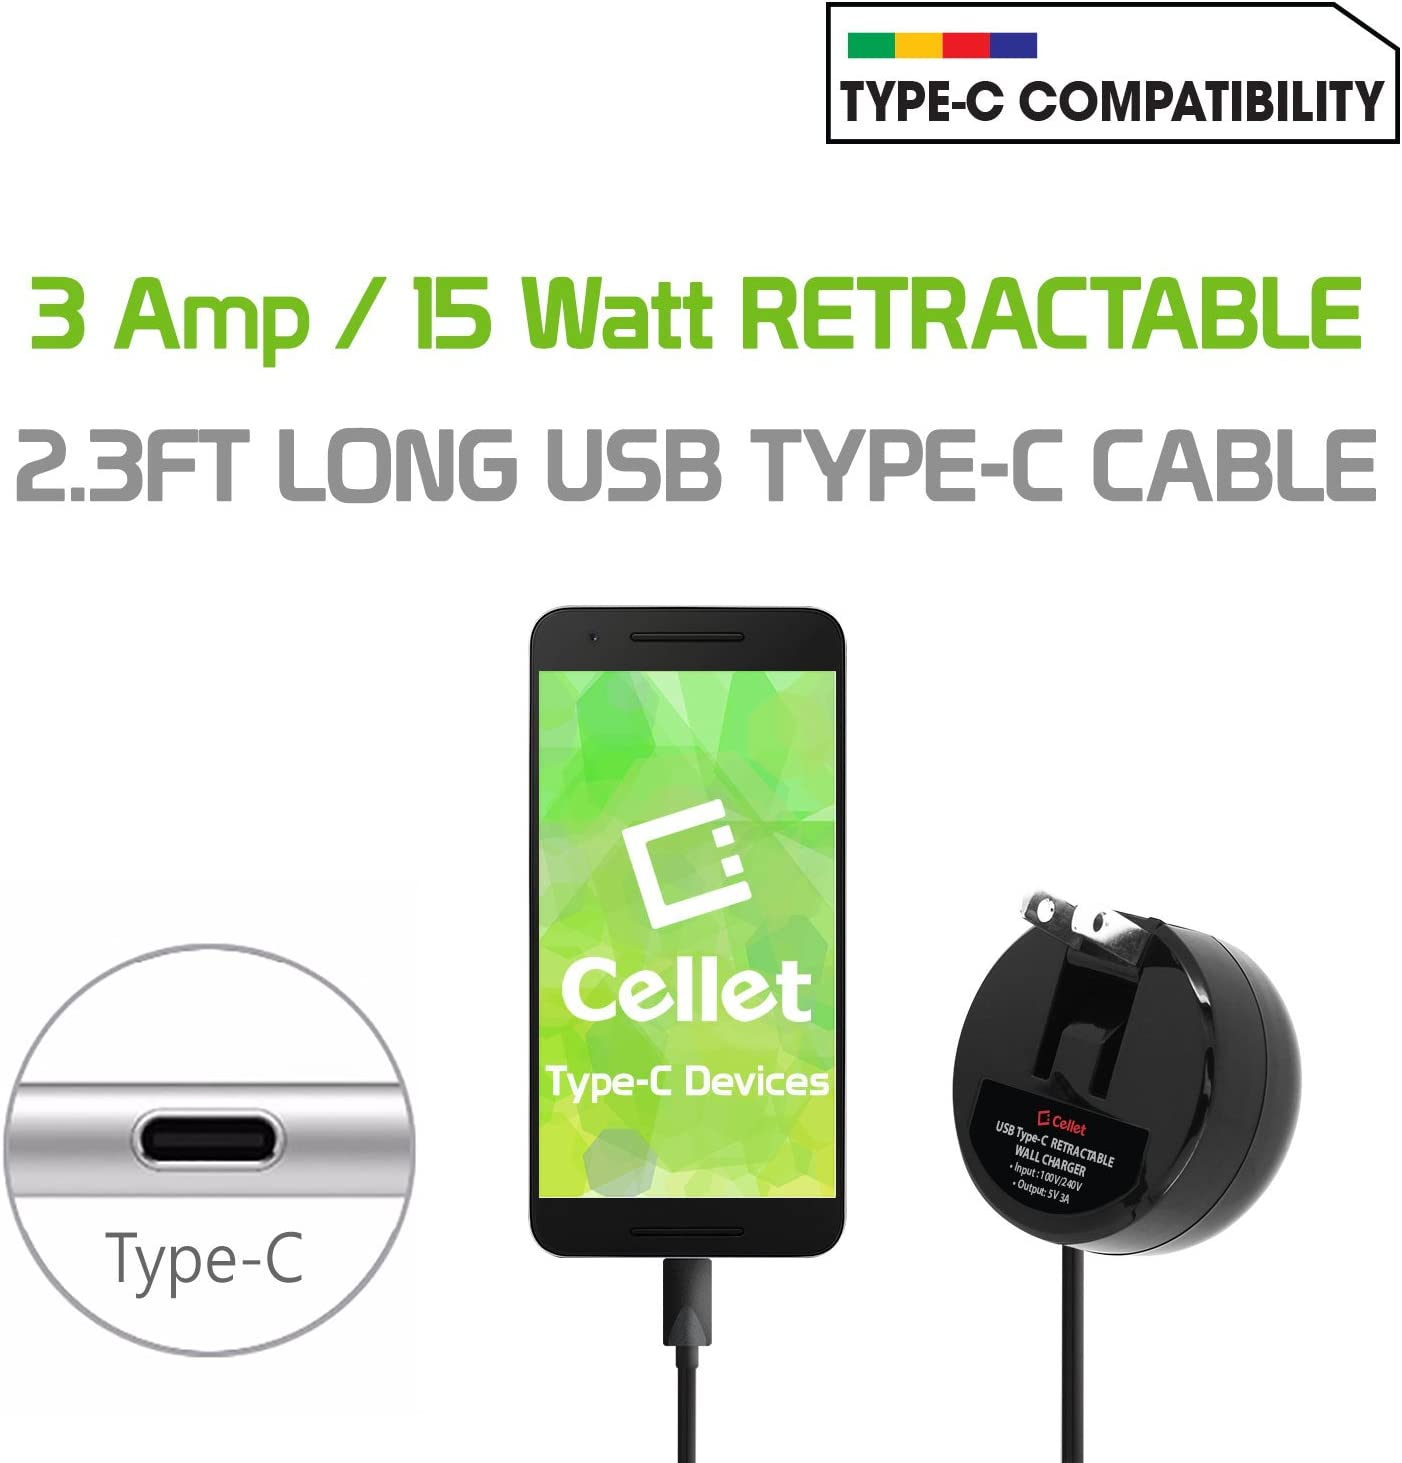 Compatible for Samsung Note 10 10 A50 A70 A80 A20 Fold Cellet Type-C Powerful Fast Charging Wall Charger Compact Retractable S9 3A//15W S9 Plus S8 S8 9 8 Galaxy S20 S10 S10e S10